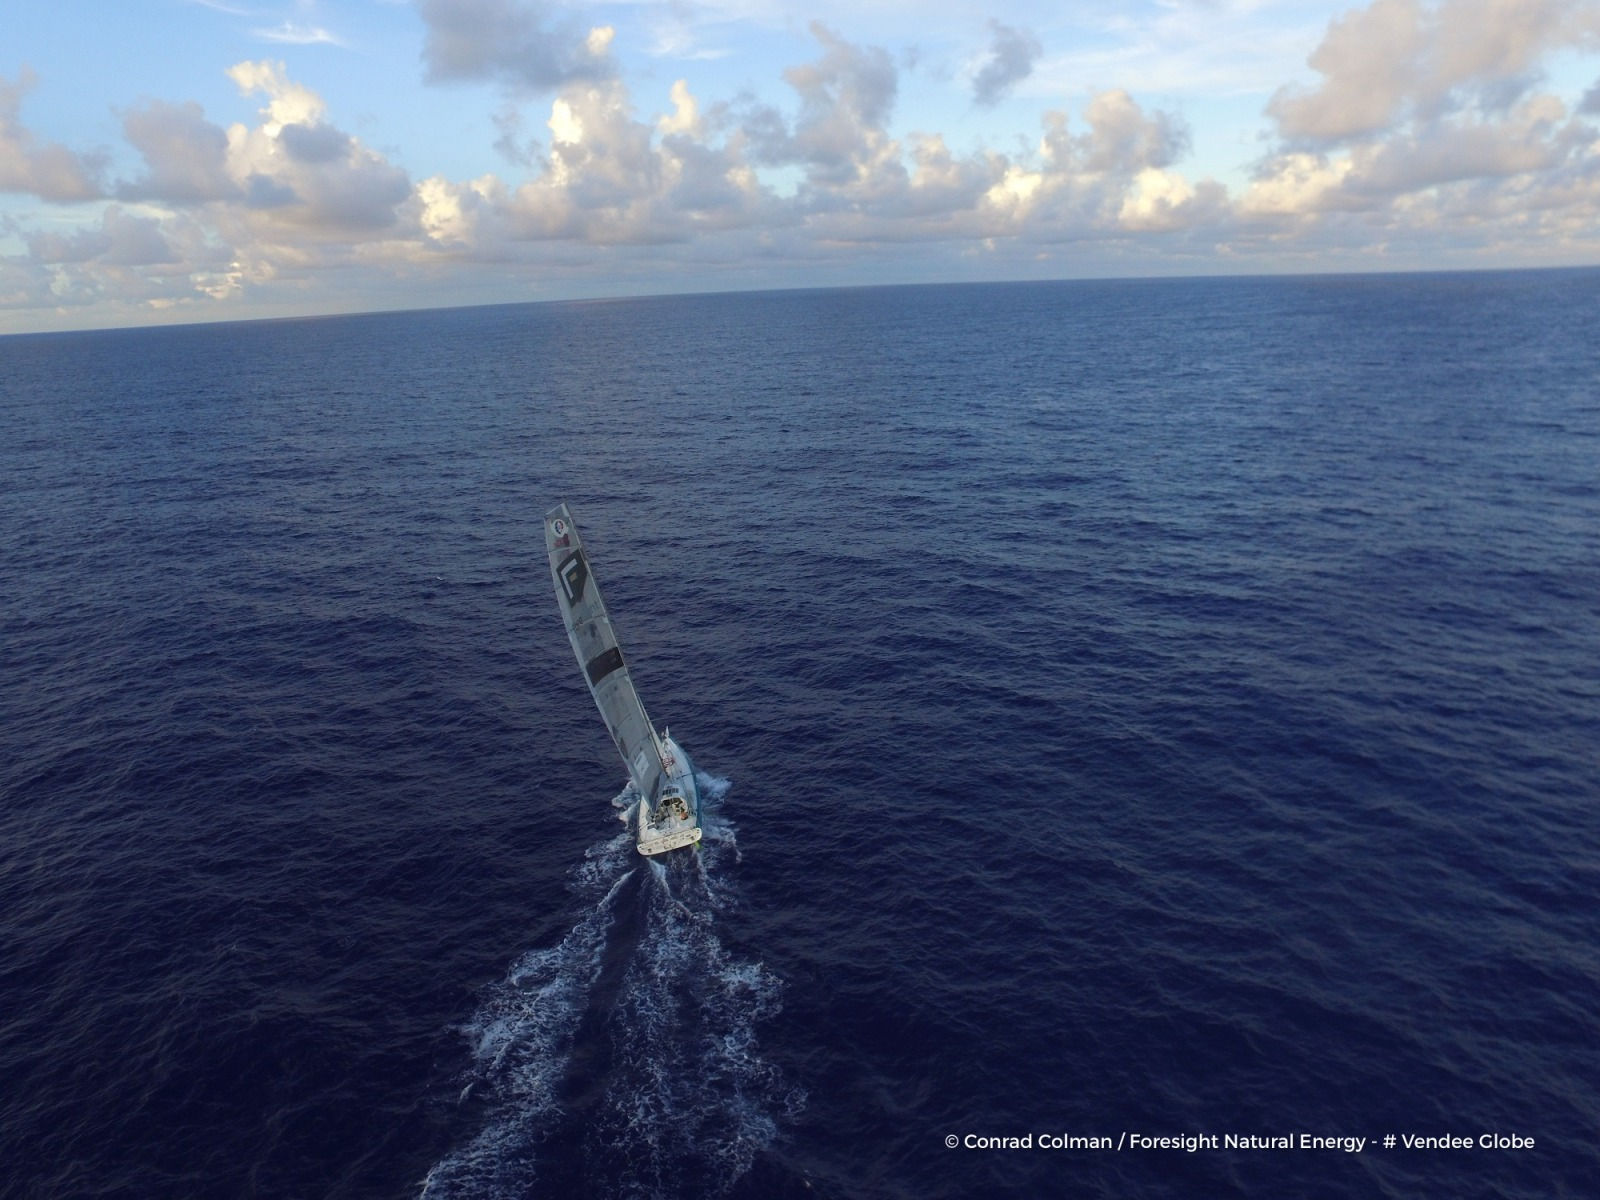 Photo sent from the boat Foresight Natural Energy, on January 25th, 2017 - Photo Conrad ColmanPhoto envoyée depuis le bateau Foresight Natural Energy le 25 Janvier 2017 - Photo Conrad ColmanAlone in the Atlantic (Drone photo)